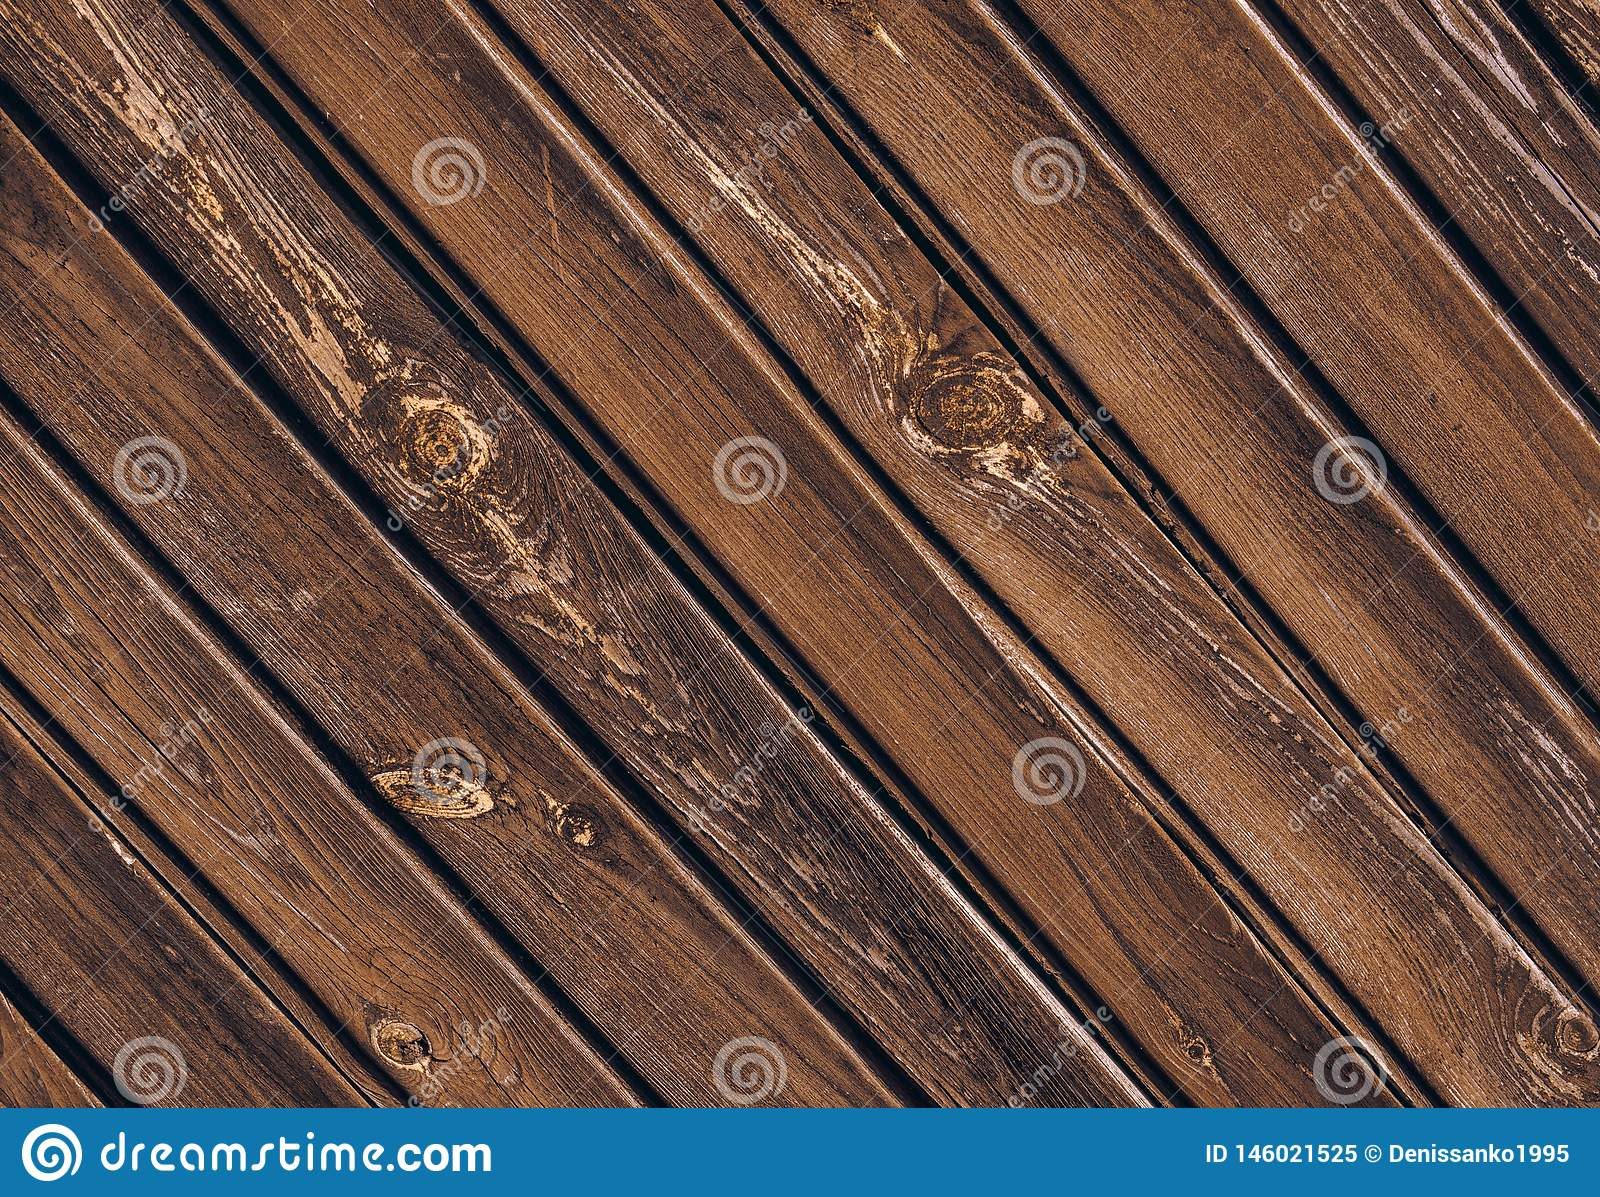 Texture of old wooden fence with skew boards